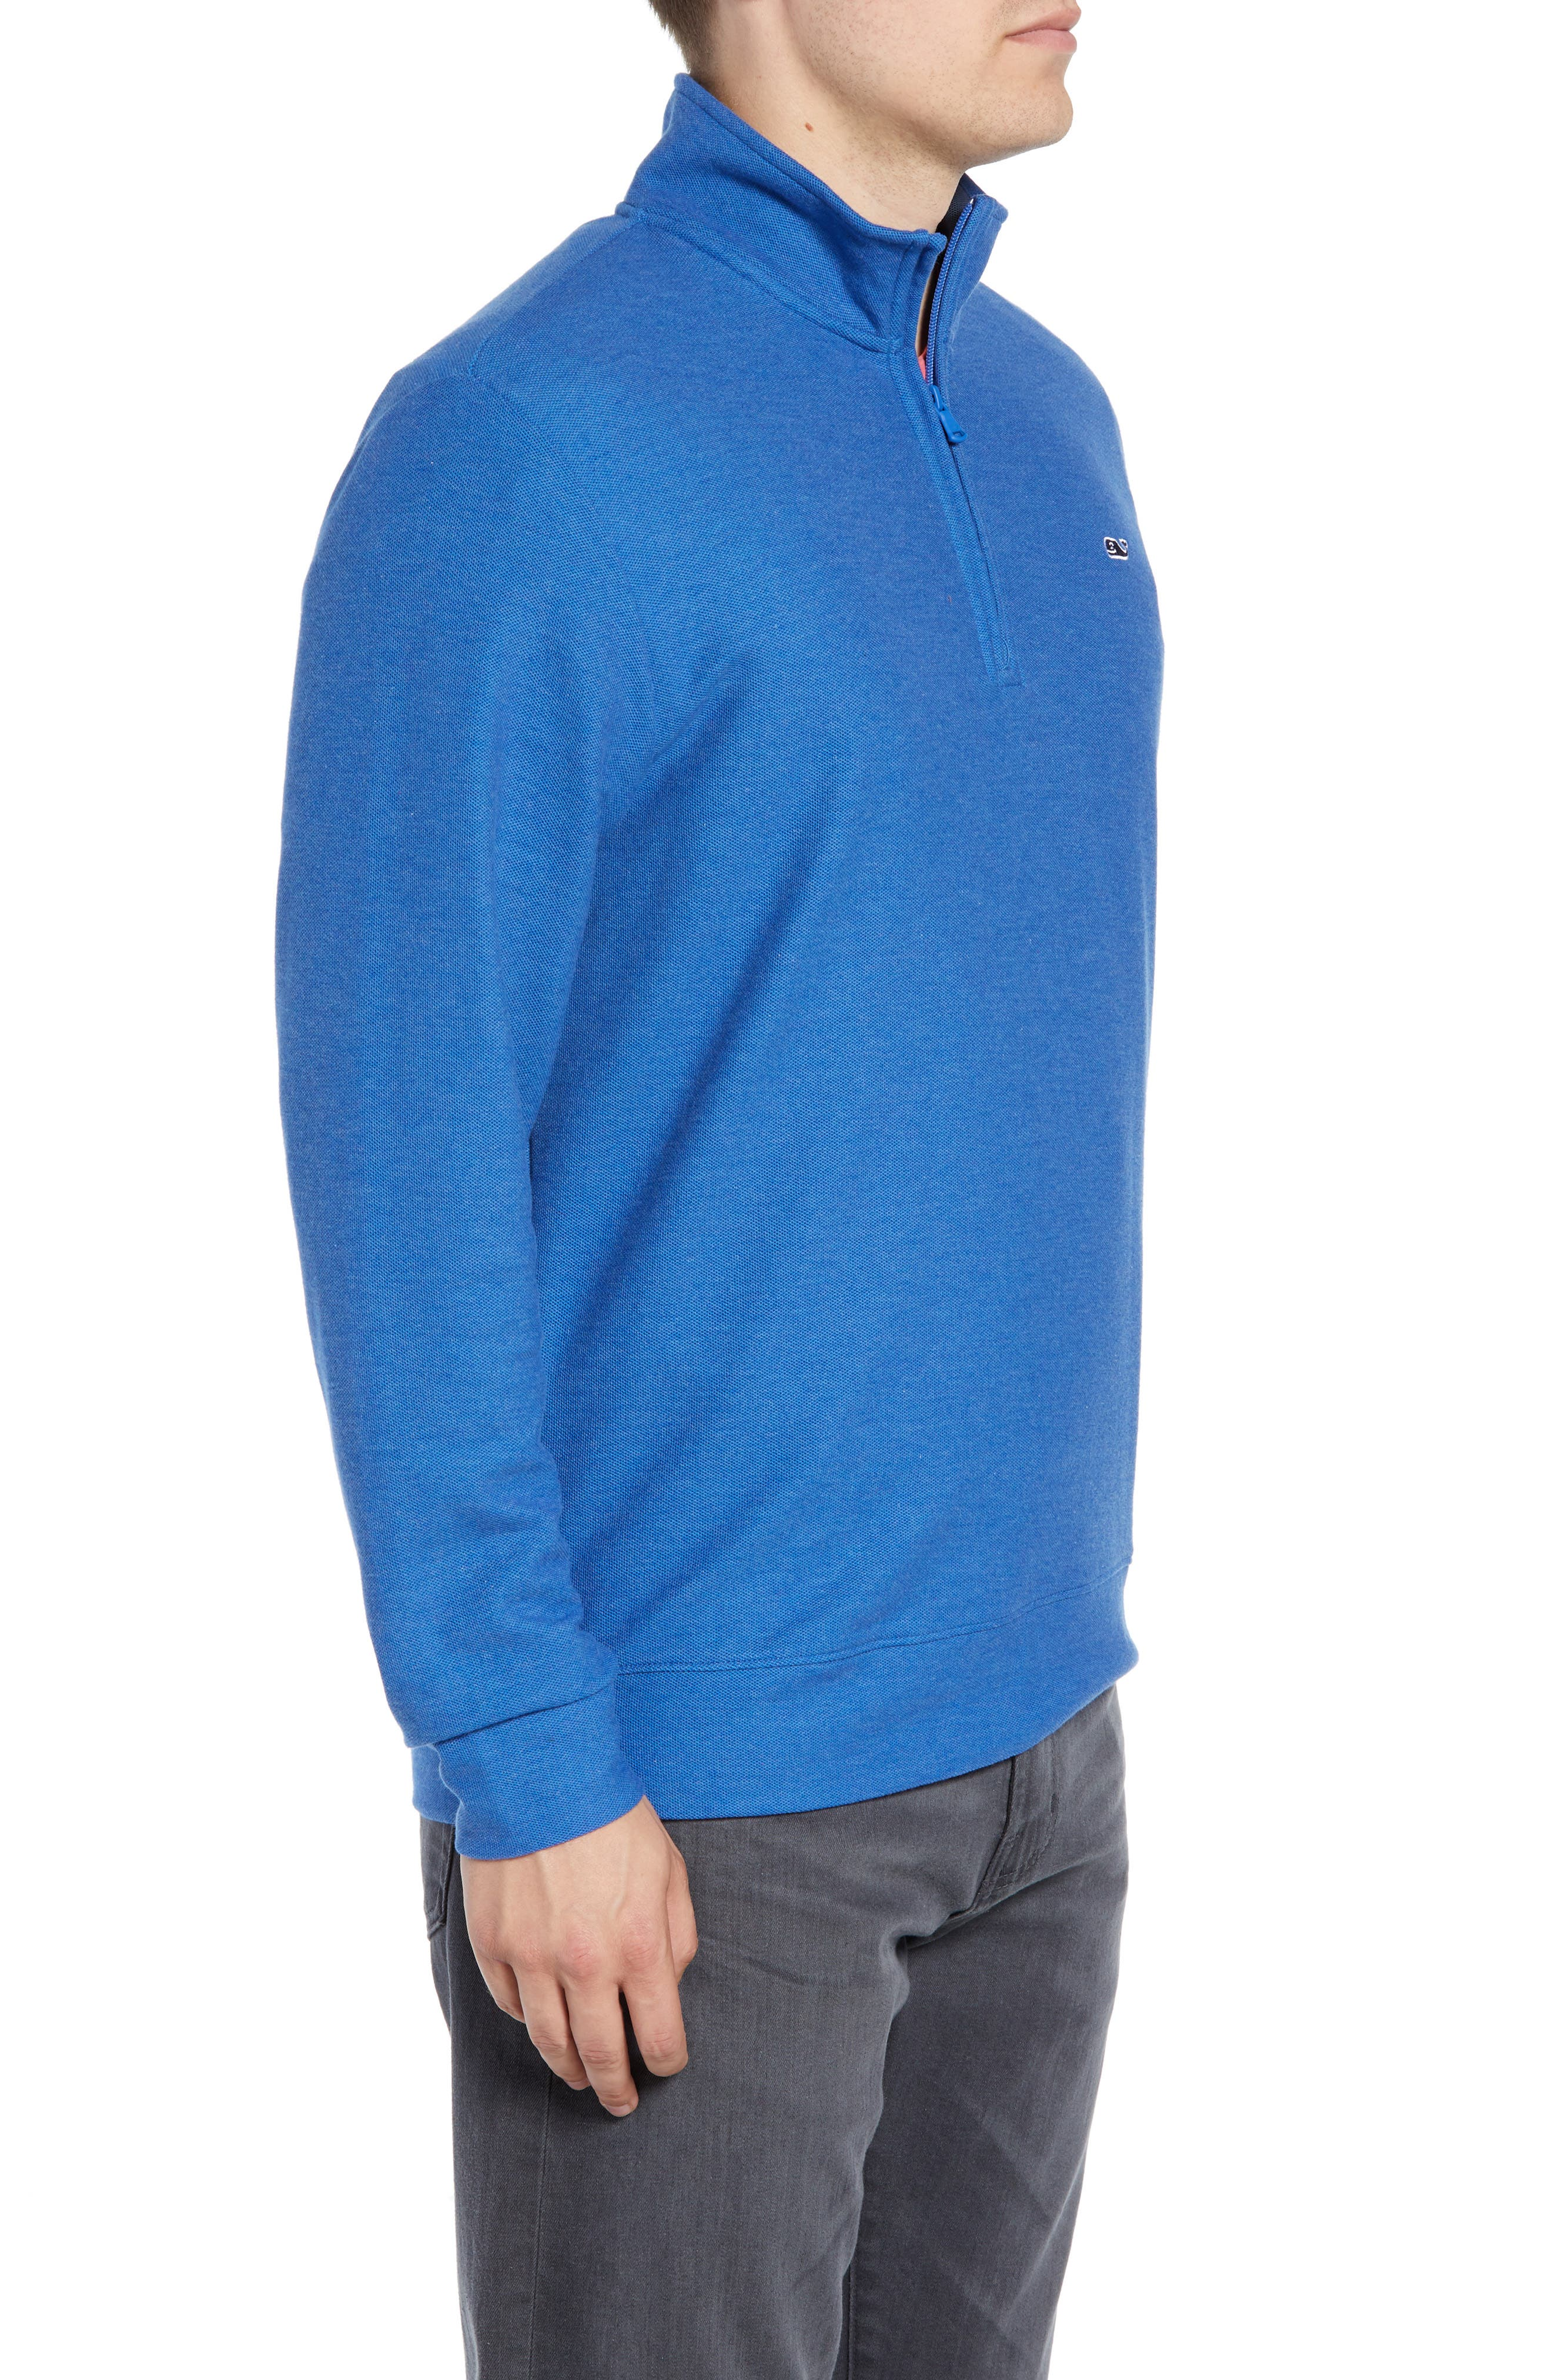 Breaker Saltwater Quarter Zip Pullover,                             Alternate thumbnail 3, color,                             HULL BLUE